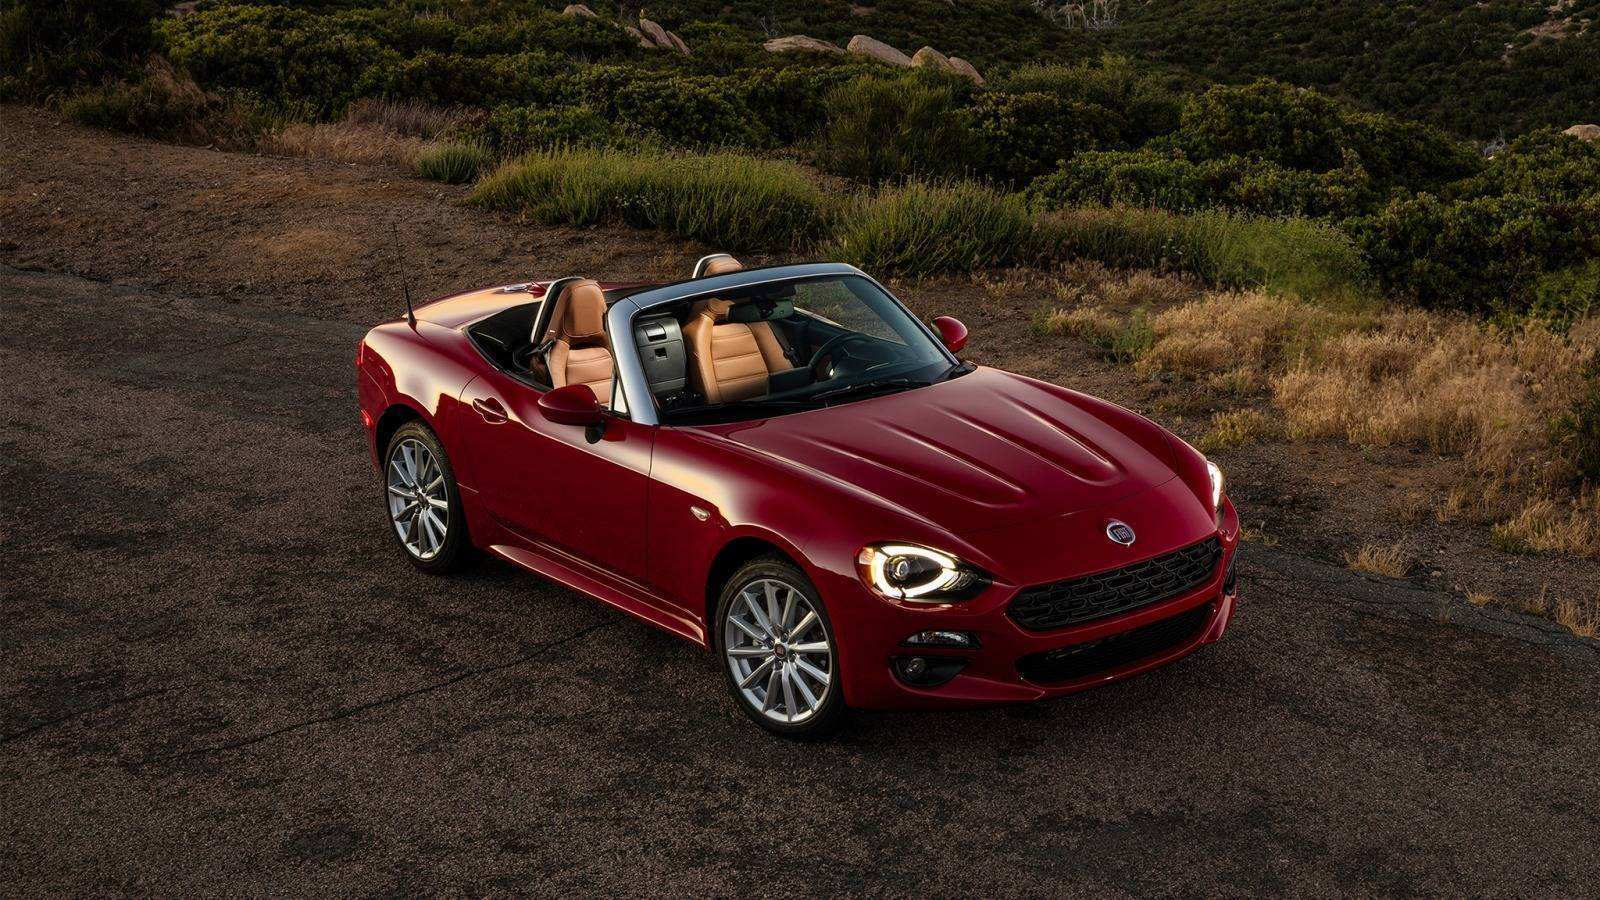 59 New 2019 Fiat Abarth 124 Spider Wallpaper with 2019 Fiat Abarth 124 Spider